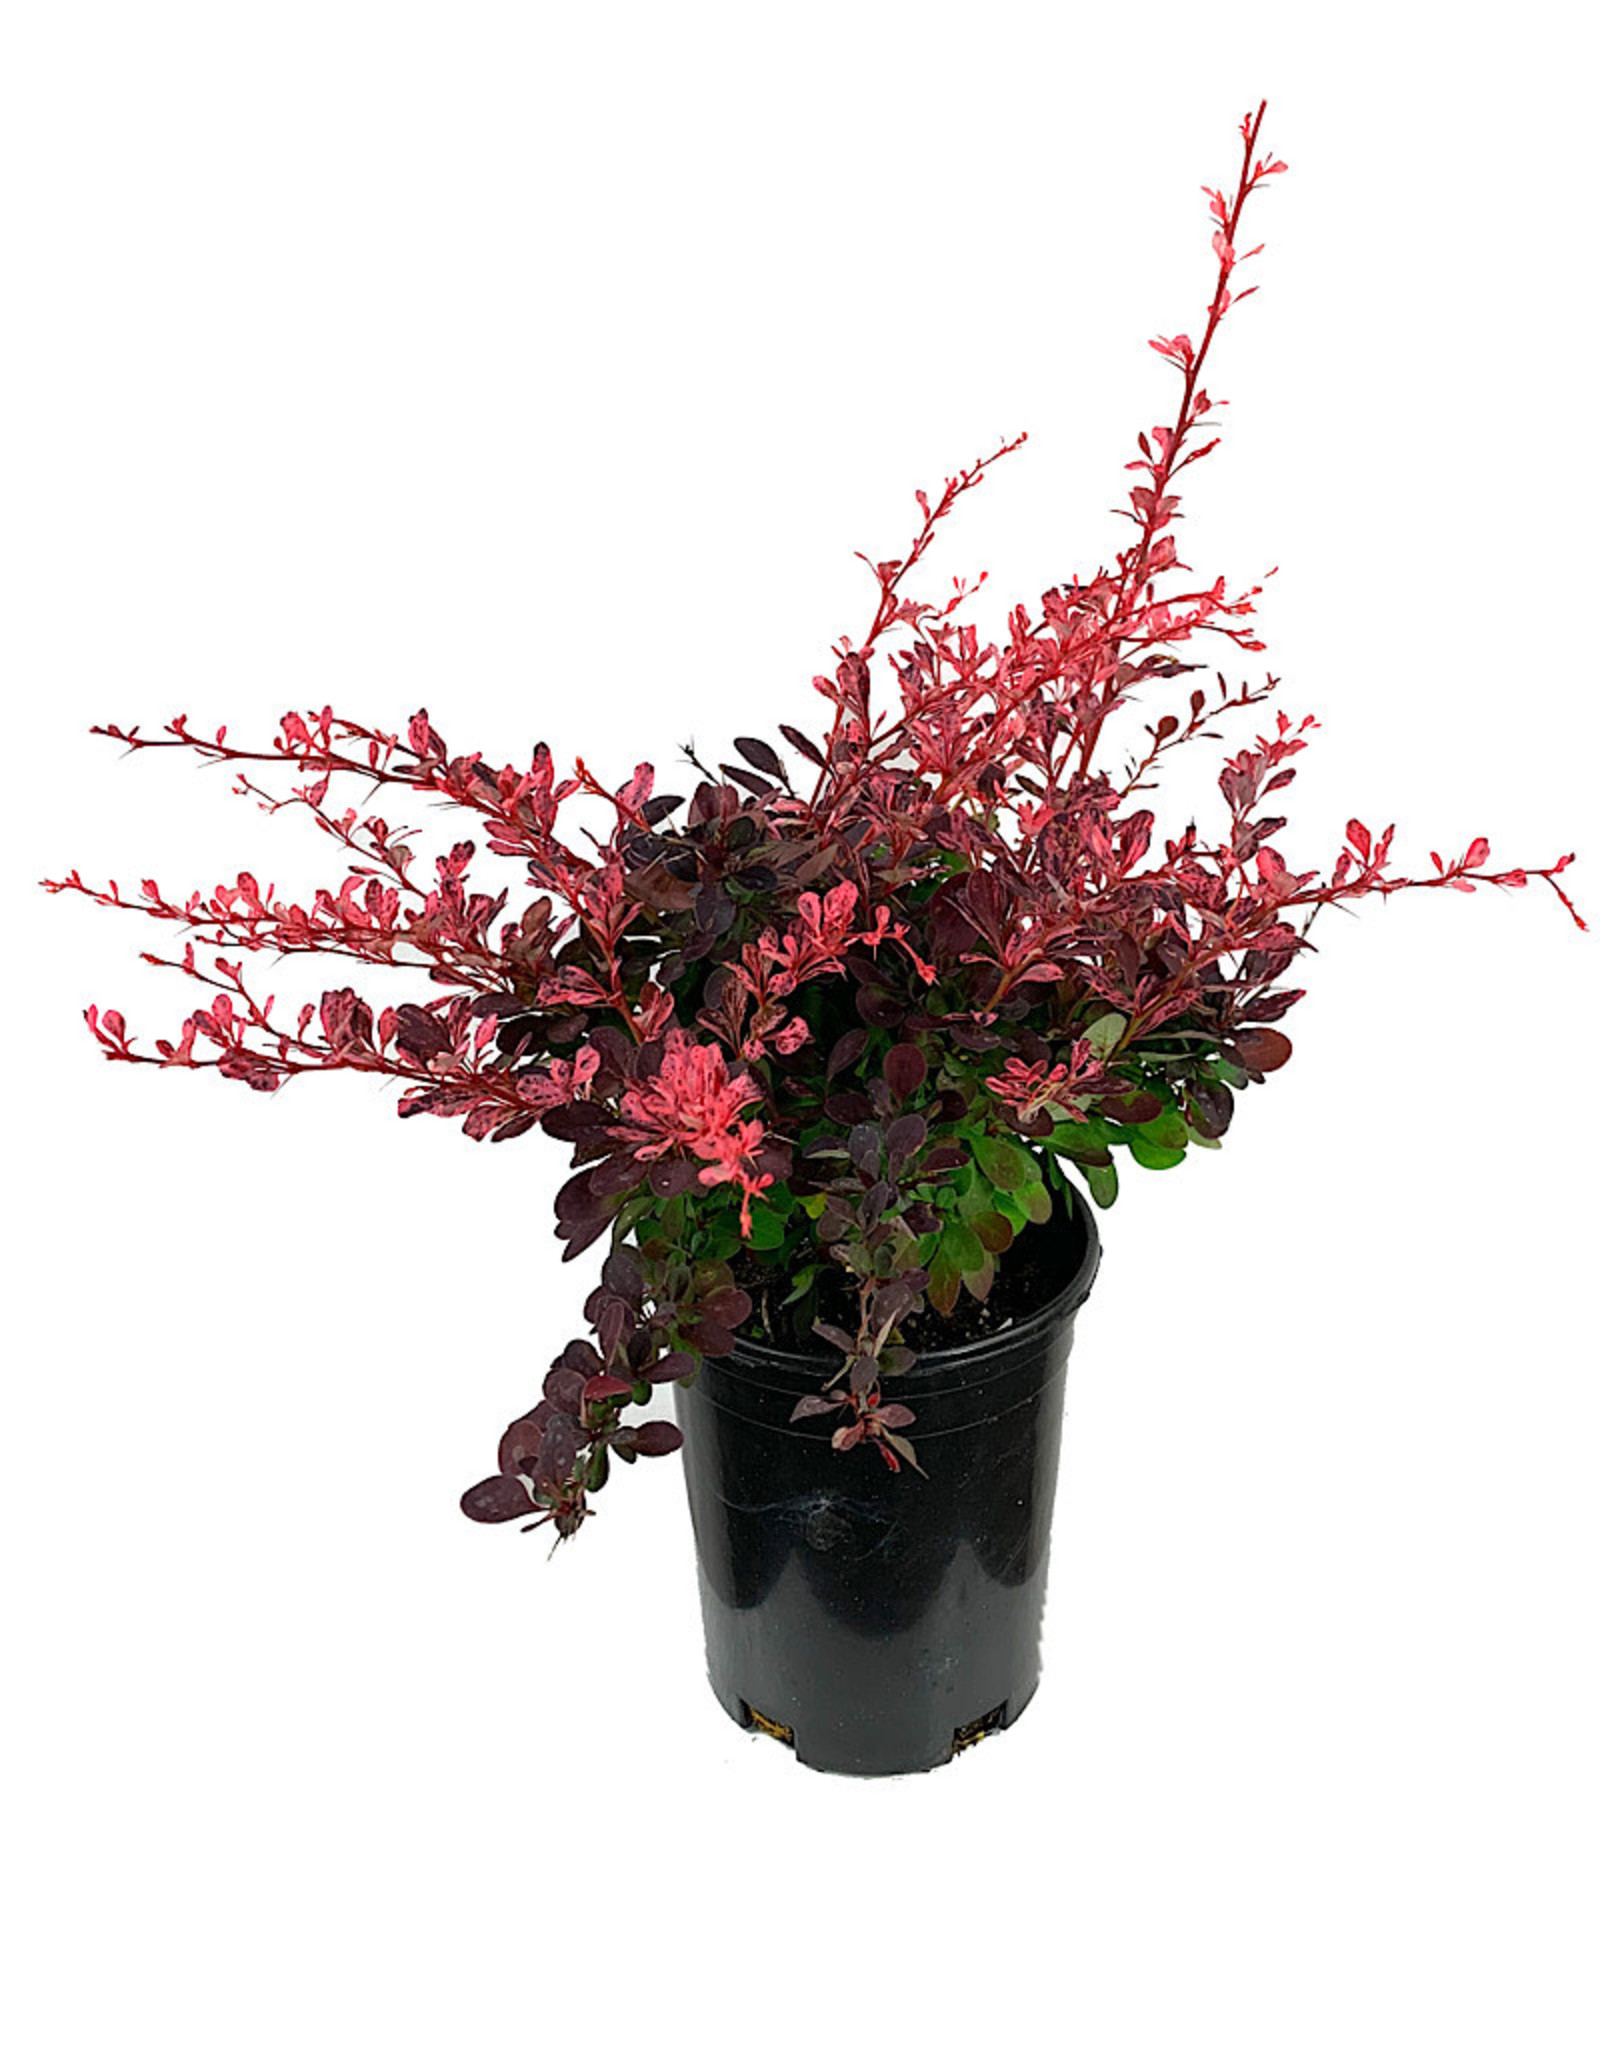 Berberis thunbergii 'Rose Glow' 1 Gallon